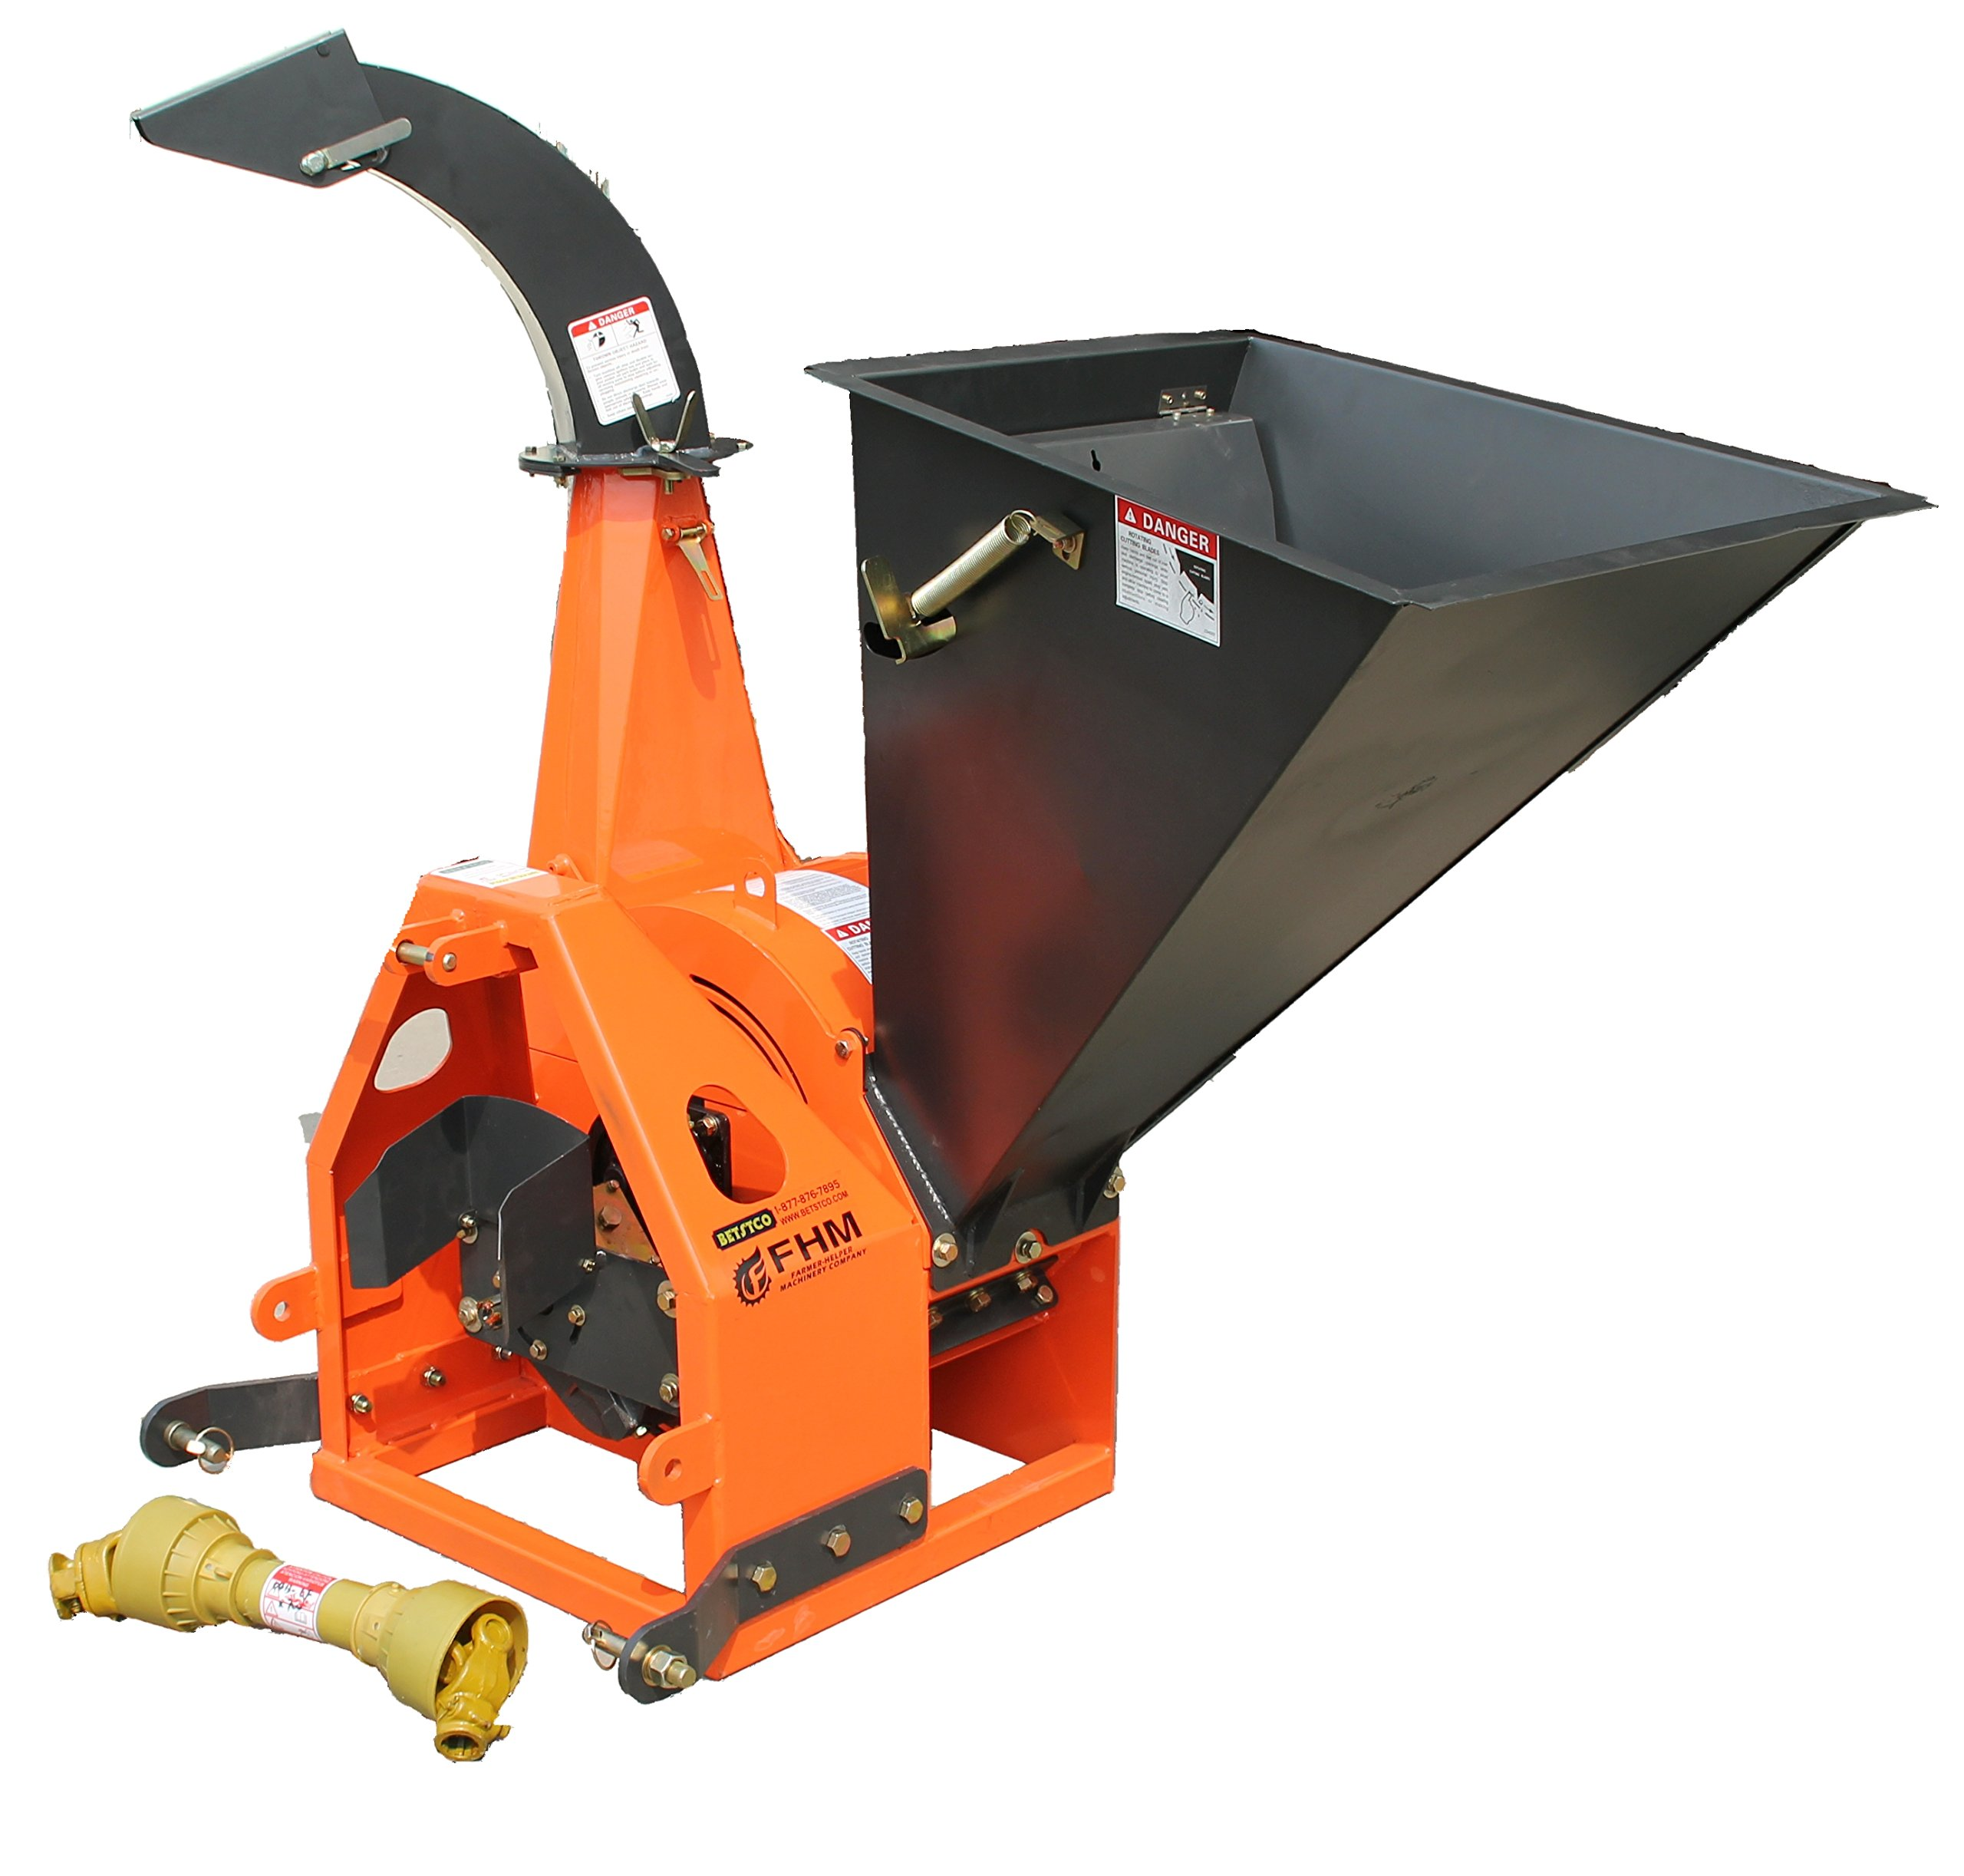 Farmer-Helper 6'' Gravity Feed Drum Wood Chipper 3 point Requires a tractor. Not a standalone unit. by Farmer-Helper